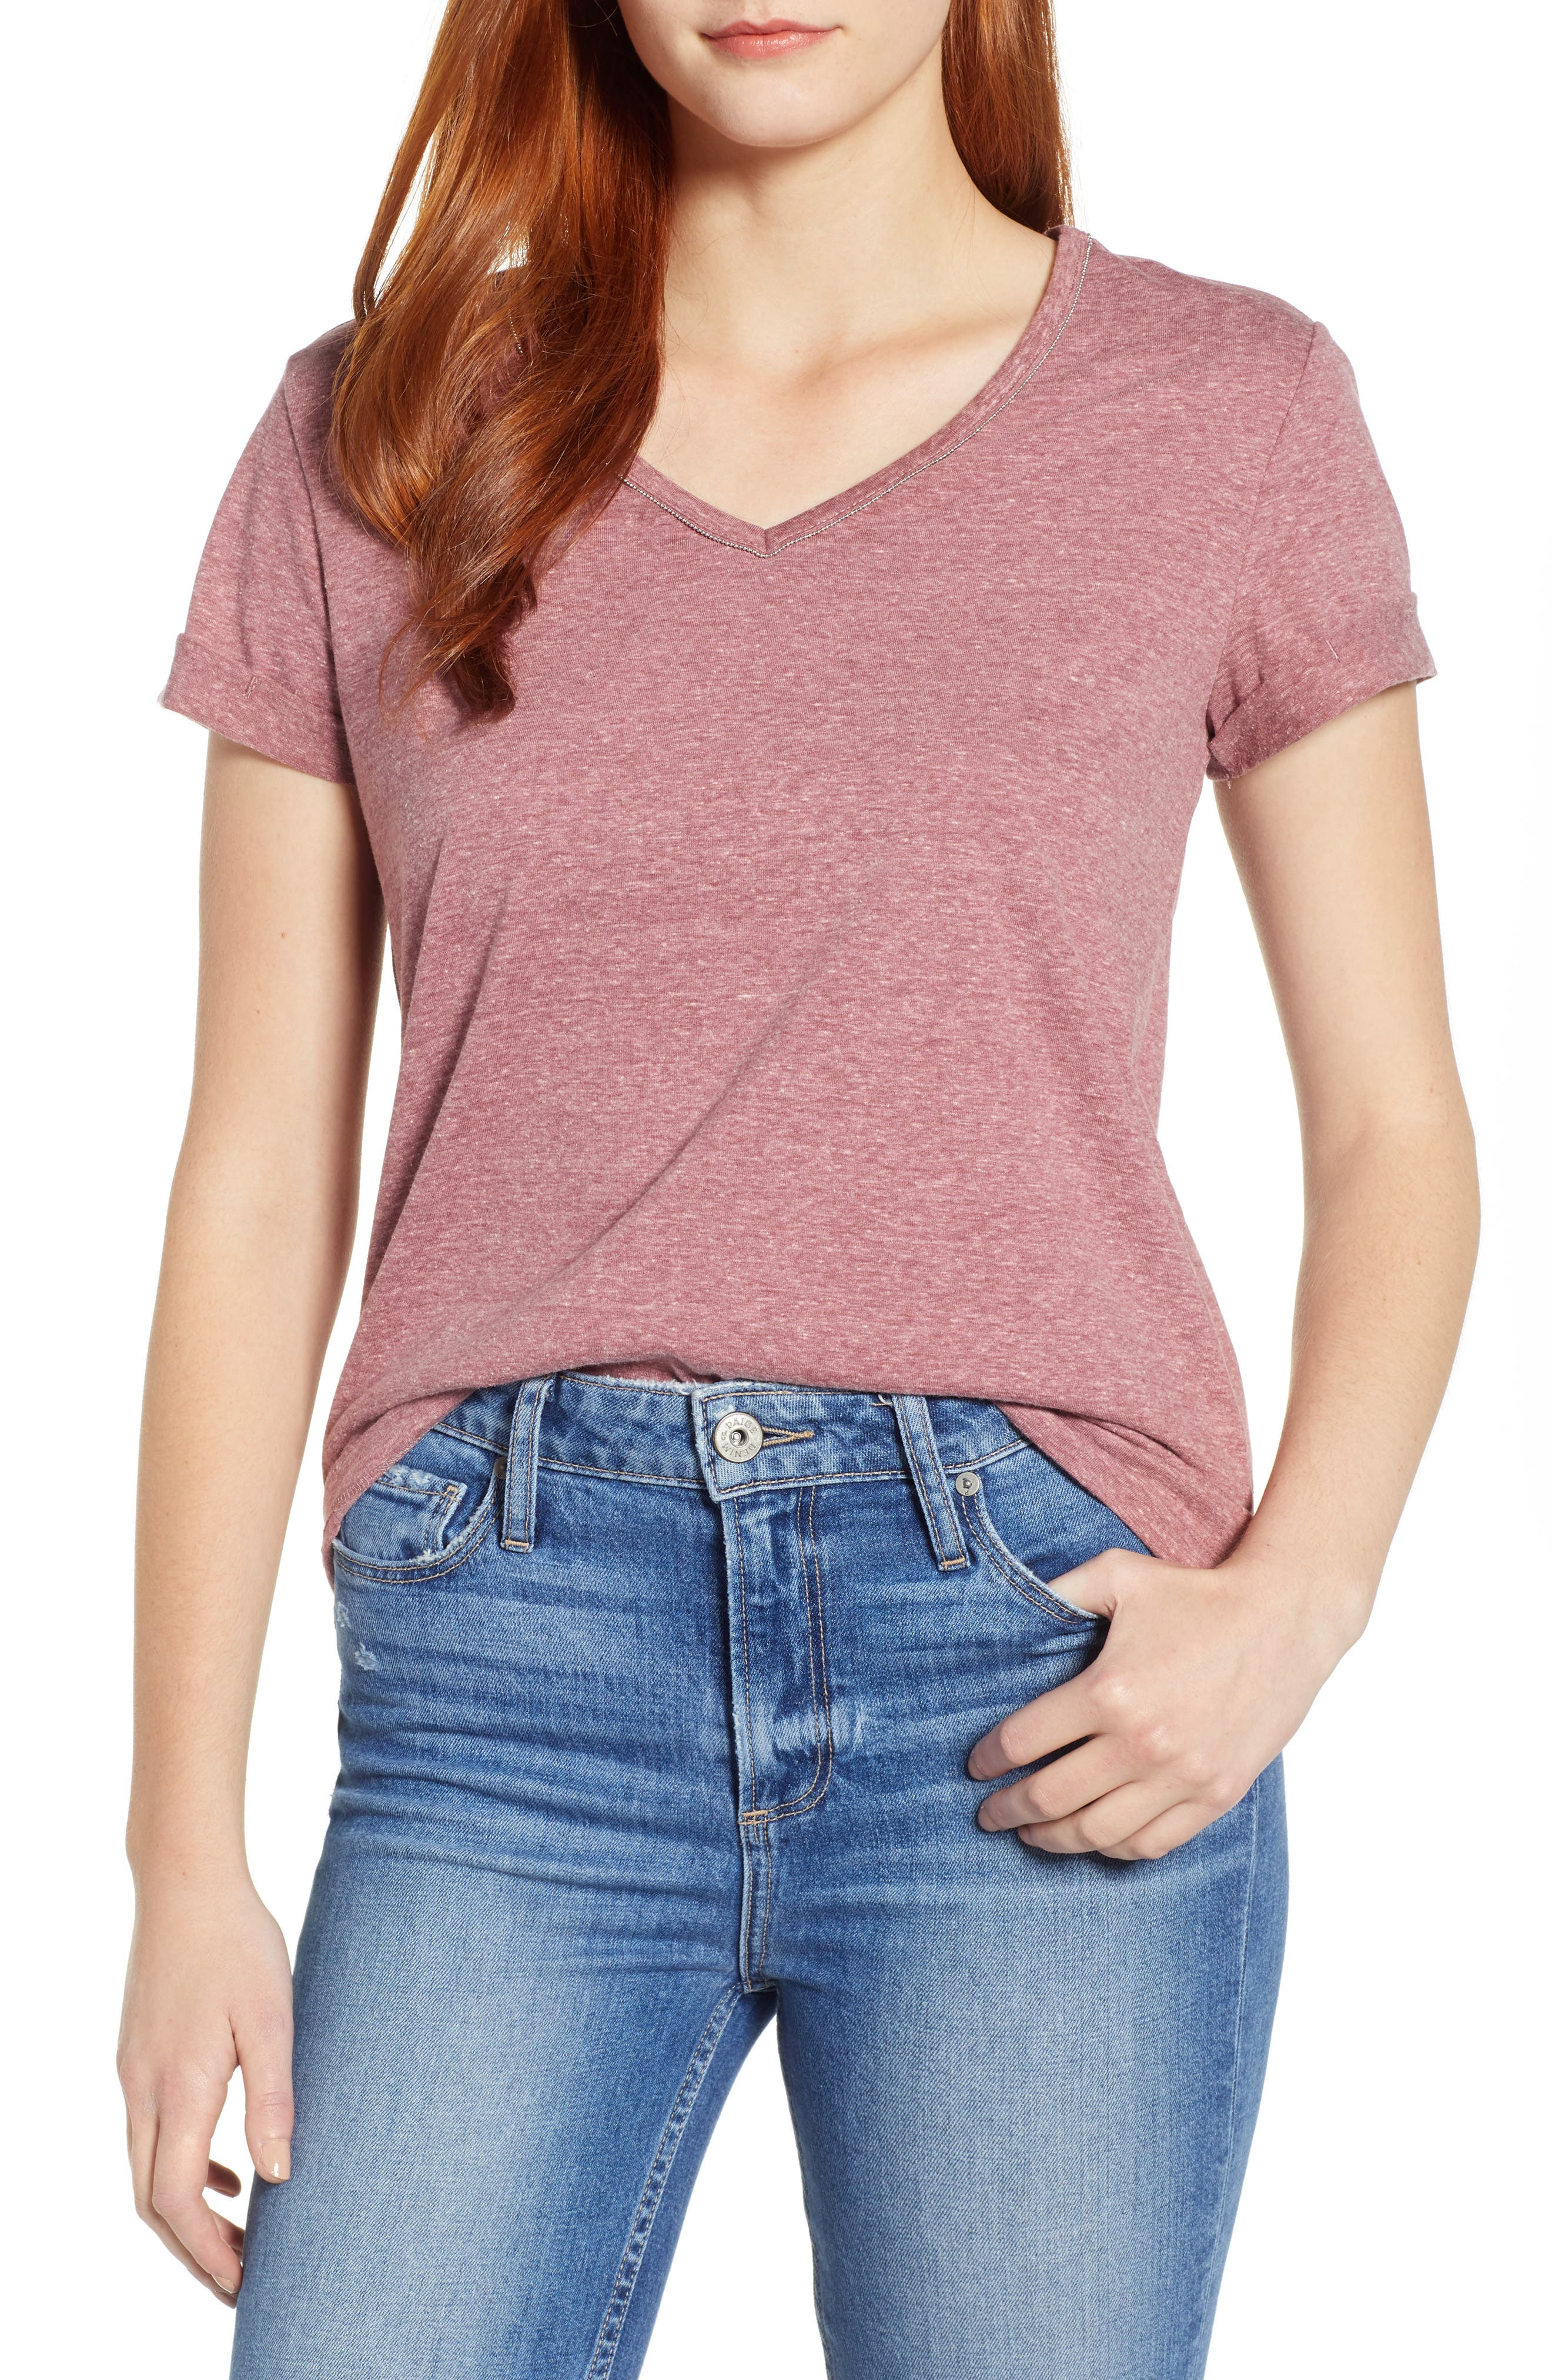 A heathered tee is stepped up from the everyday variety with a fine chain tracing the V-neckline. Style Name: Wit & Wisdom Chain Trim V-Neck Tee (Nordstrom Exclusive). Style Number: 5707403. Available in stores.